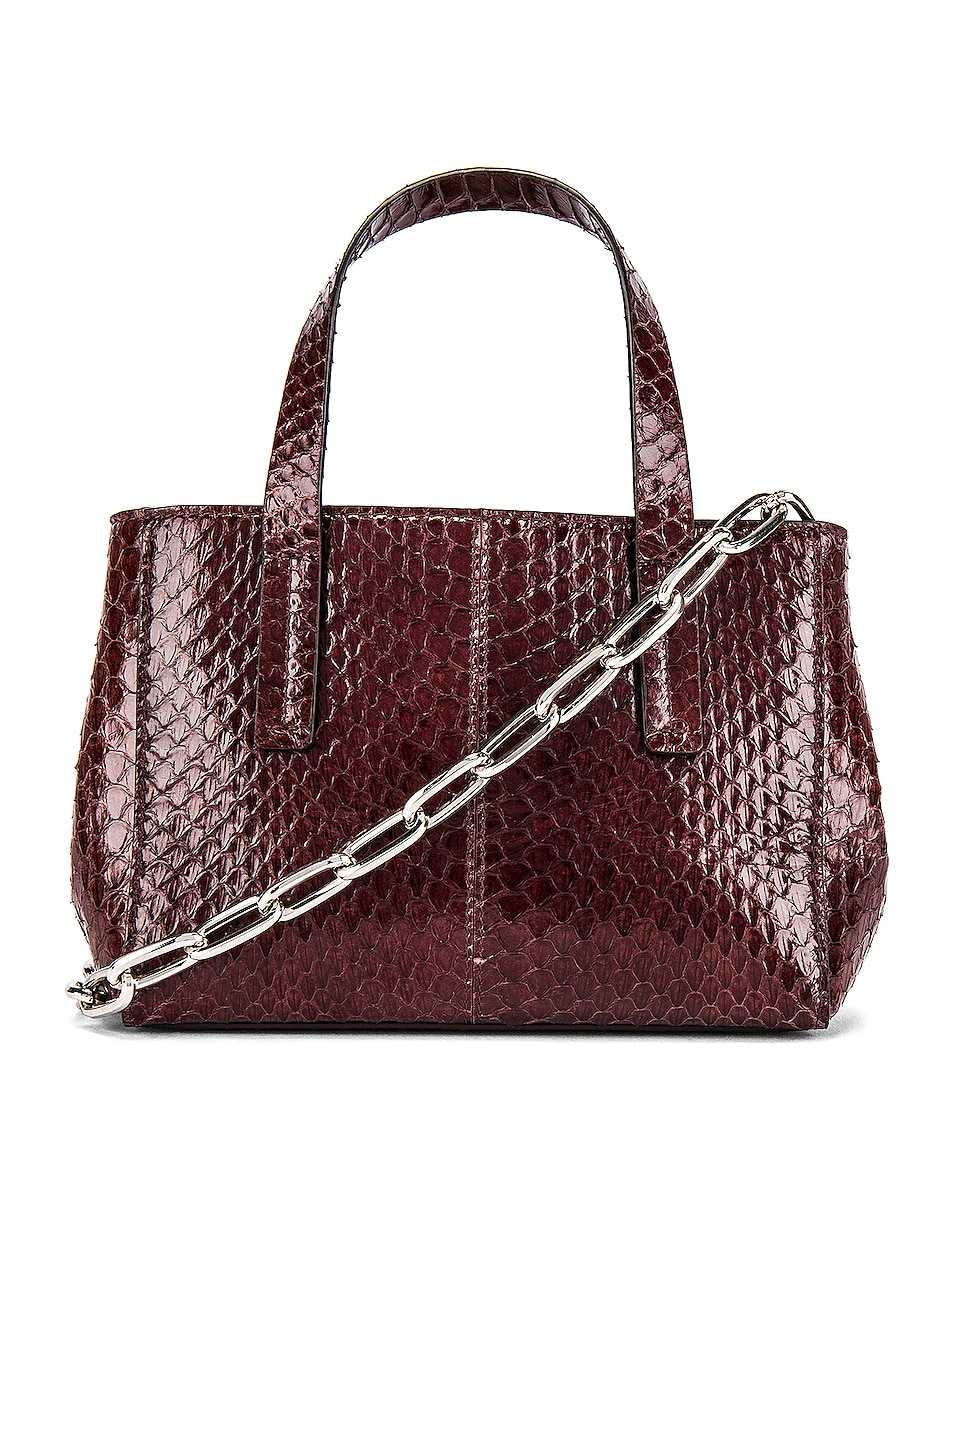 Tibi Le Client Chain Ayers Water Snake Mini Bag in Dark Brown